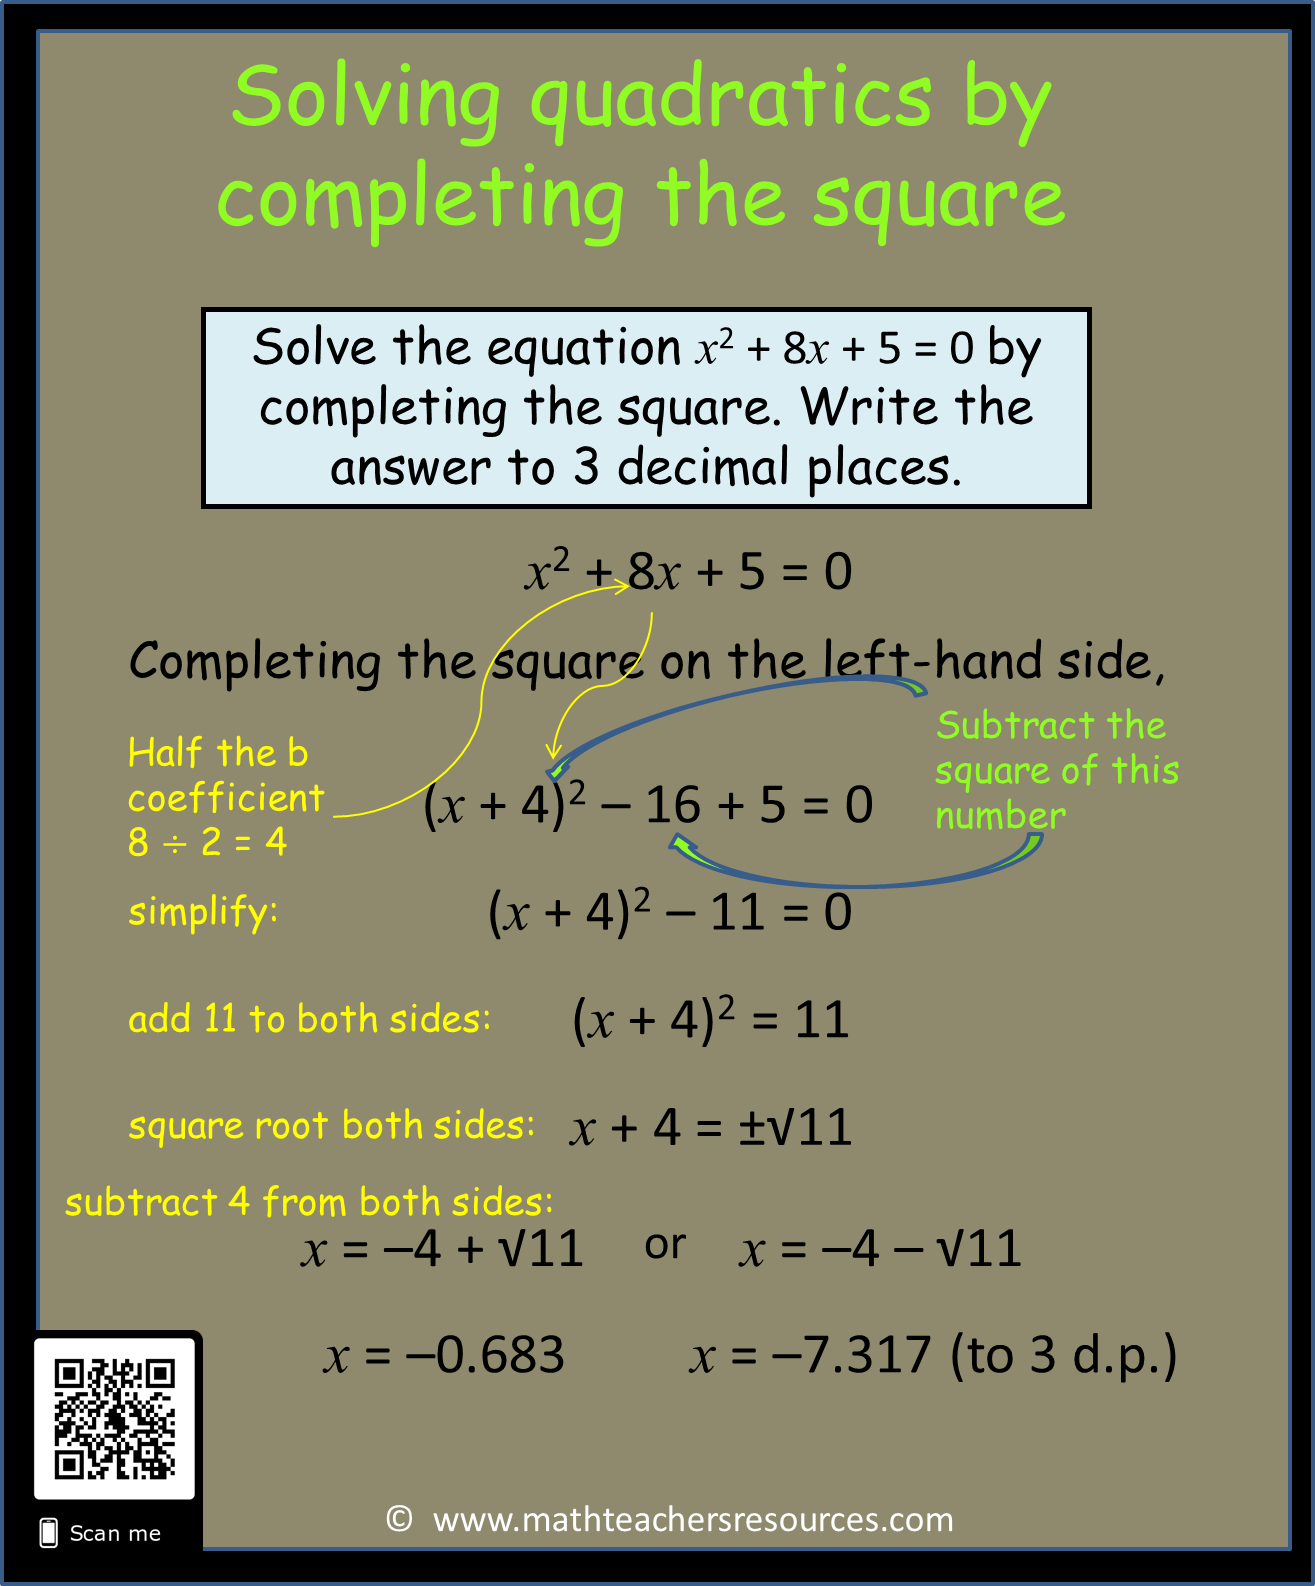 How To Solve Quadratic Equations By Completing The Square